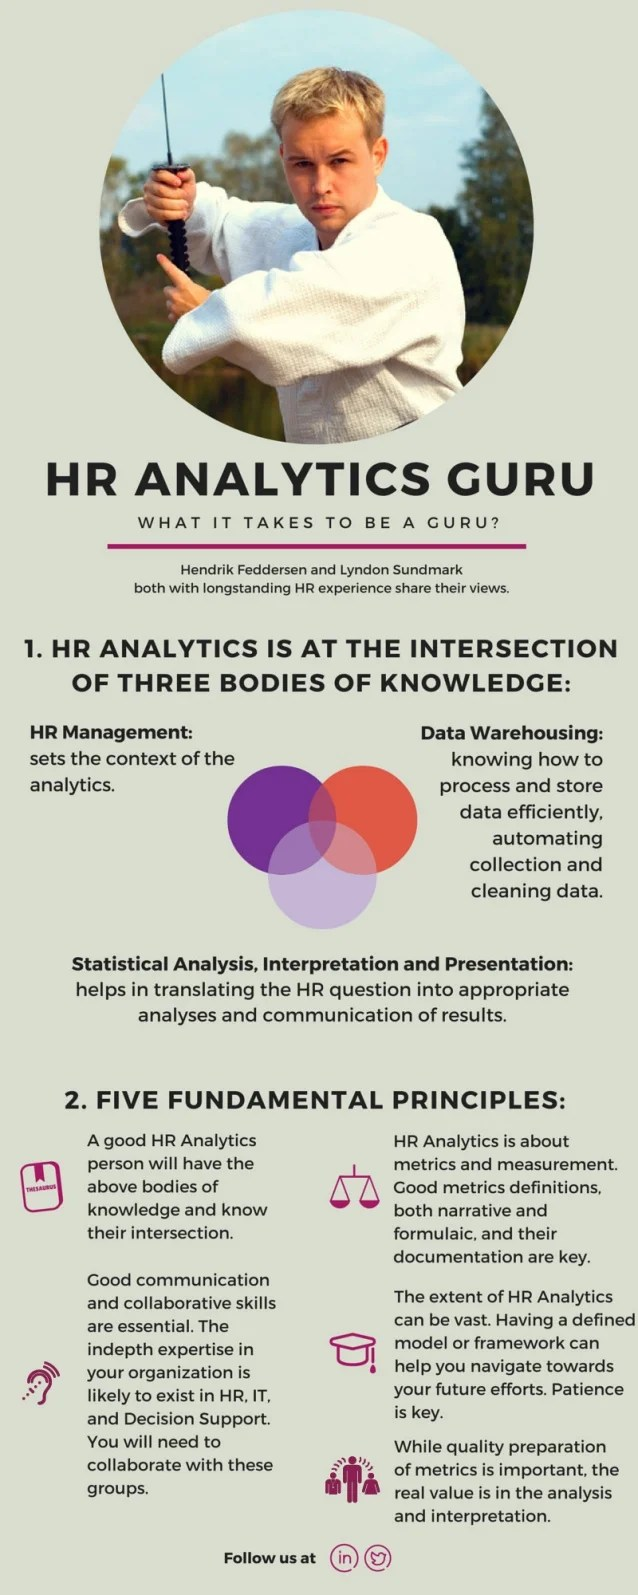 HR Analytics Guru What it takes to be a guru?